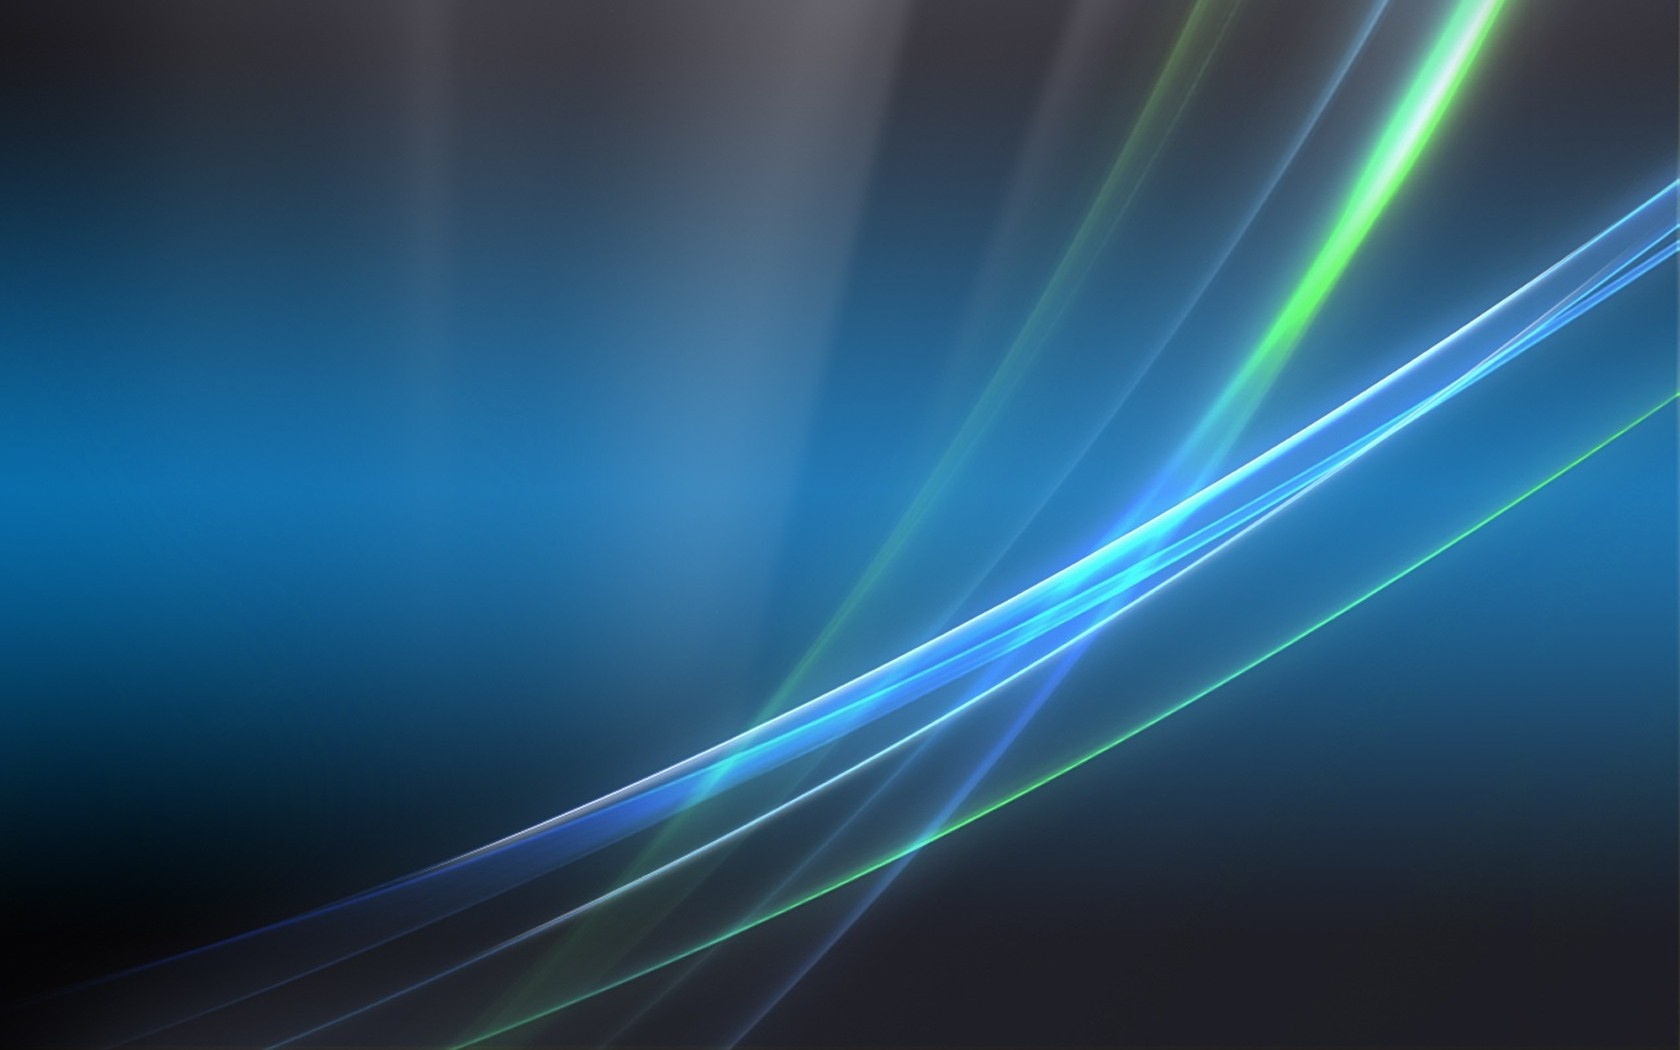 abstract wallpapers hd ultimate vista